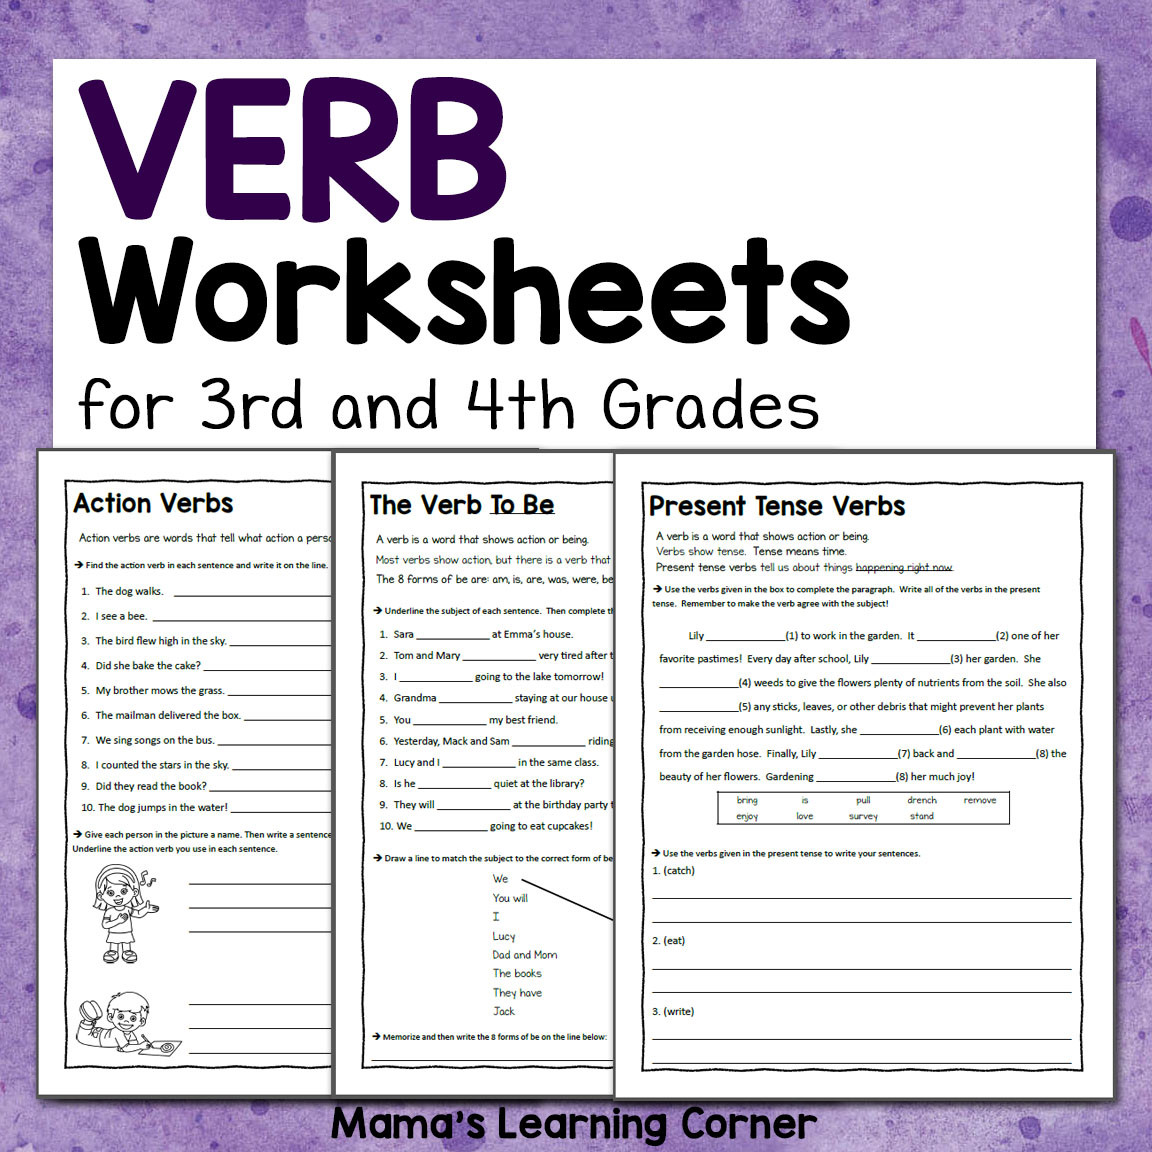 Verbs Worksheet 4th Grade Verb Worksheets for 3rd and 4th Grades